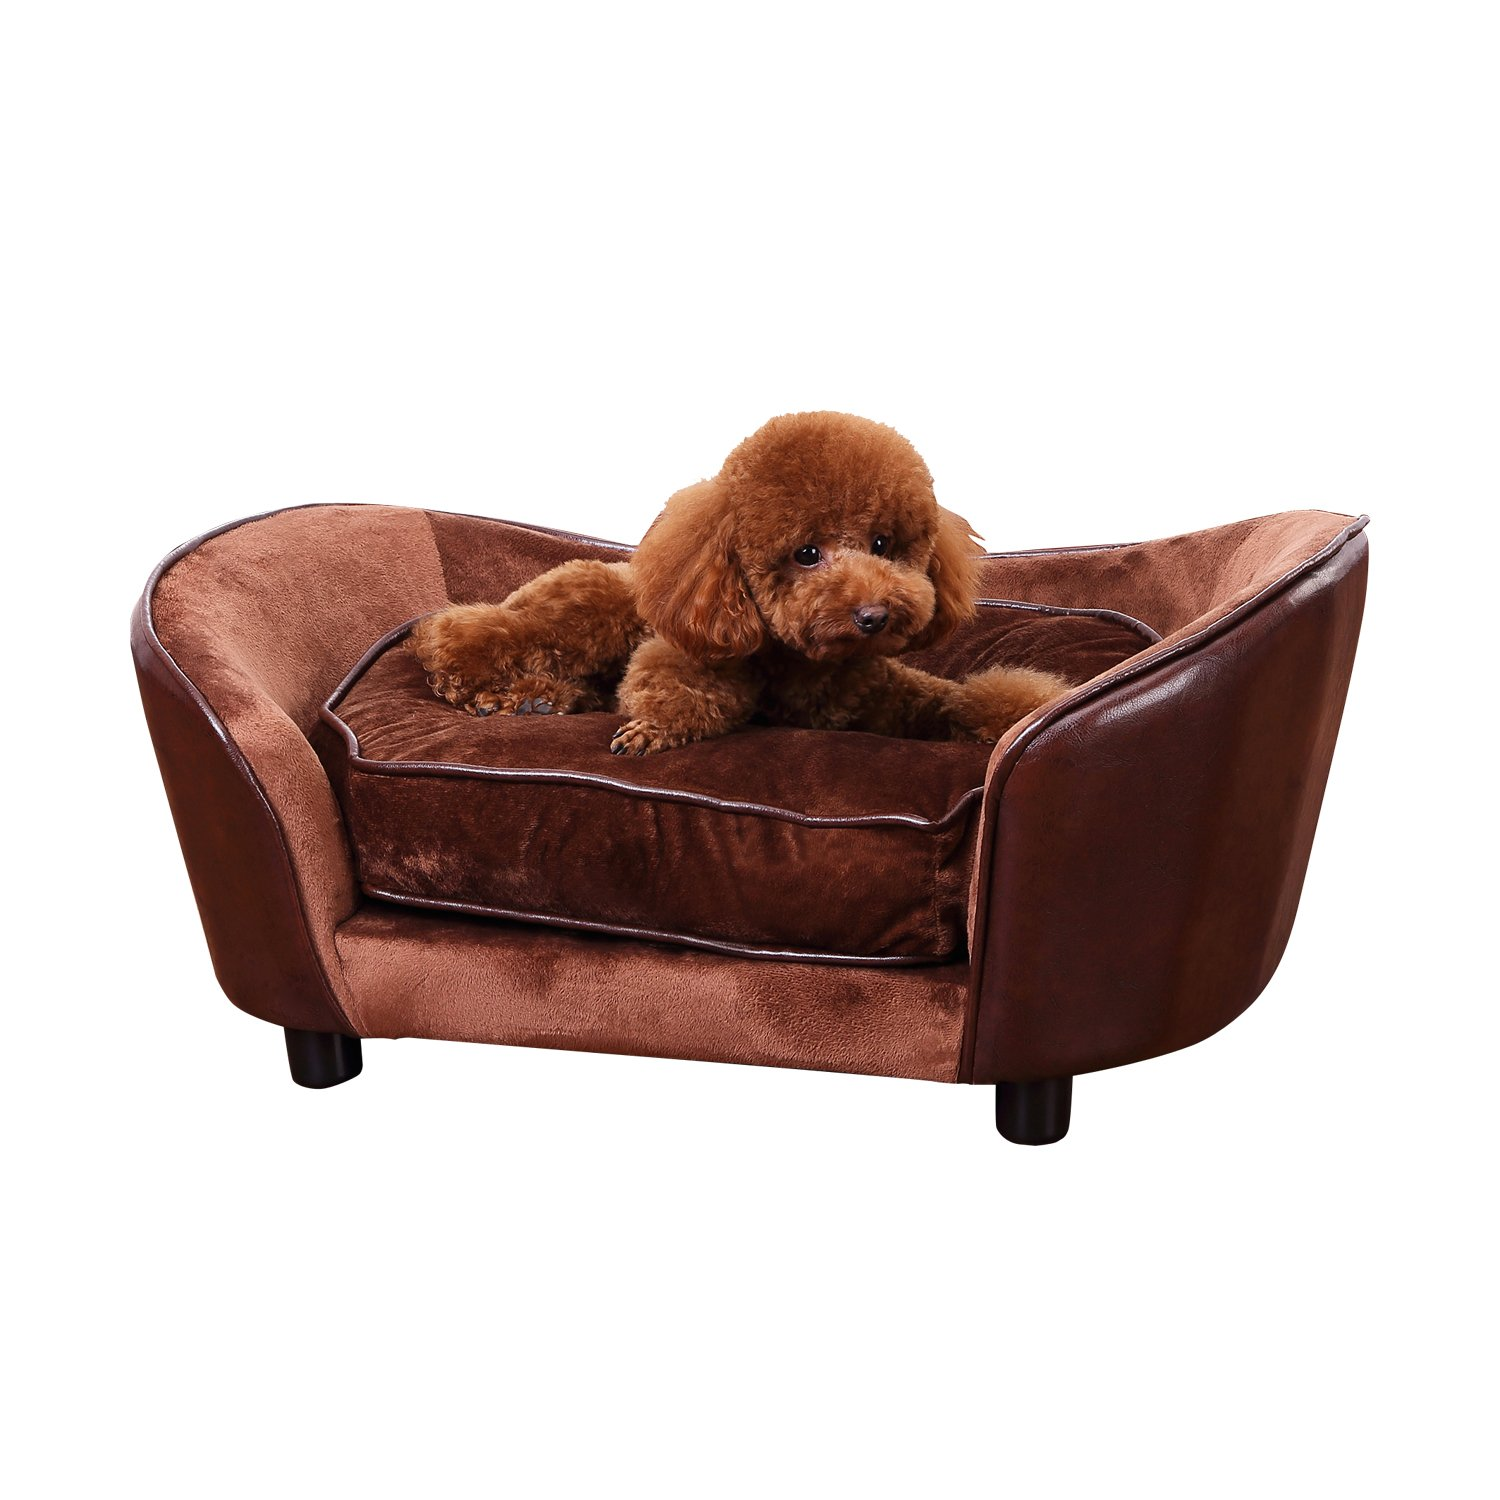 Dog Sofas And Chairs Uk Hereo Sofa